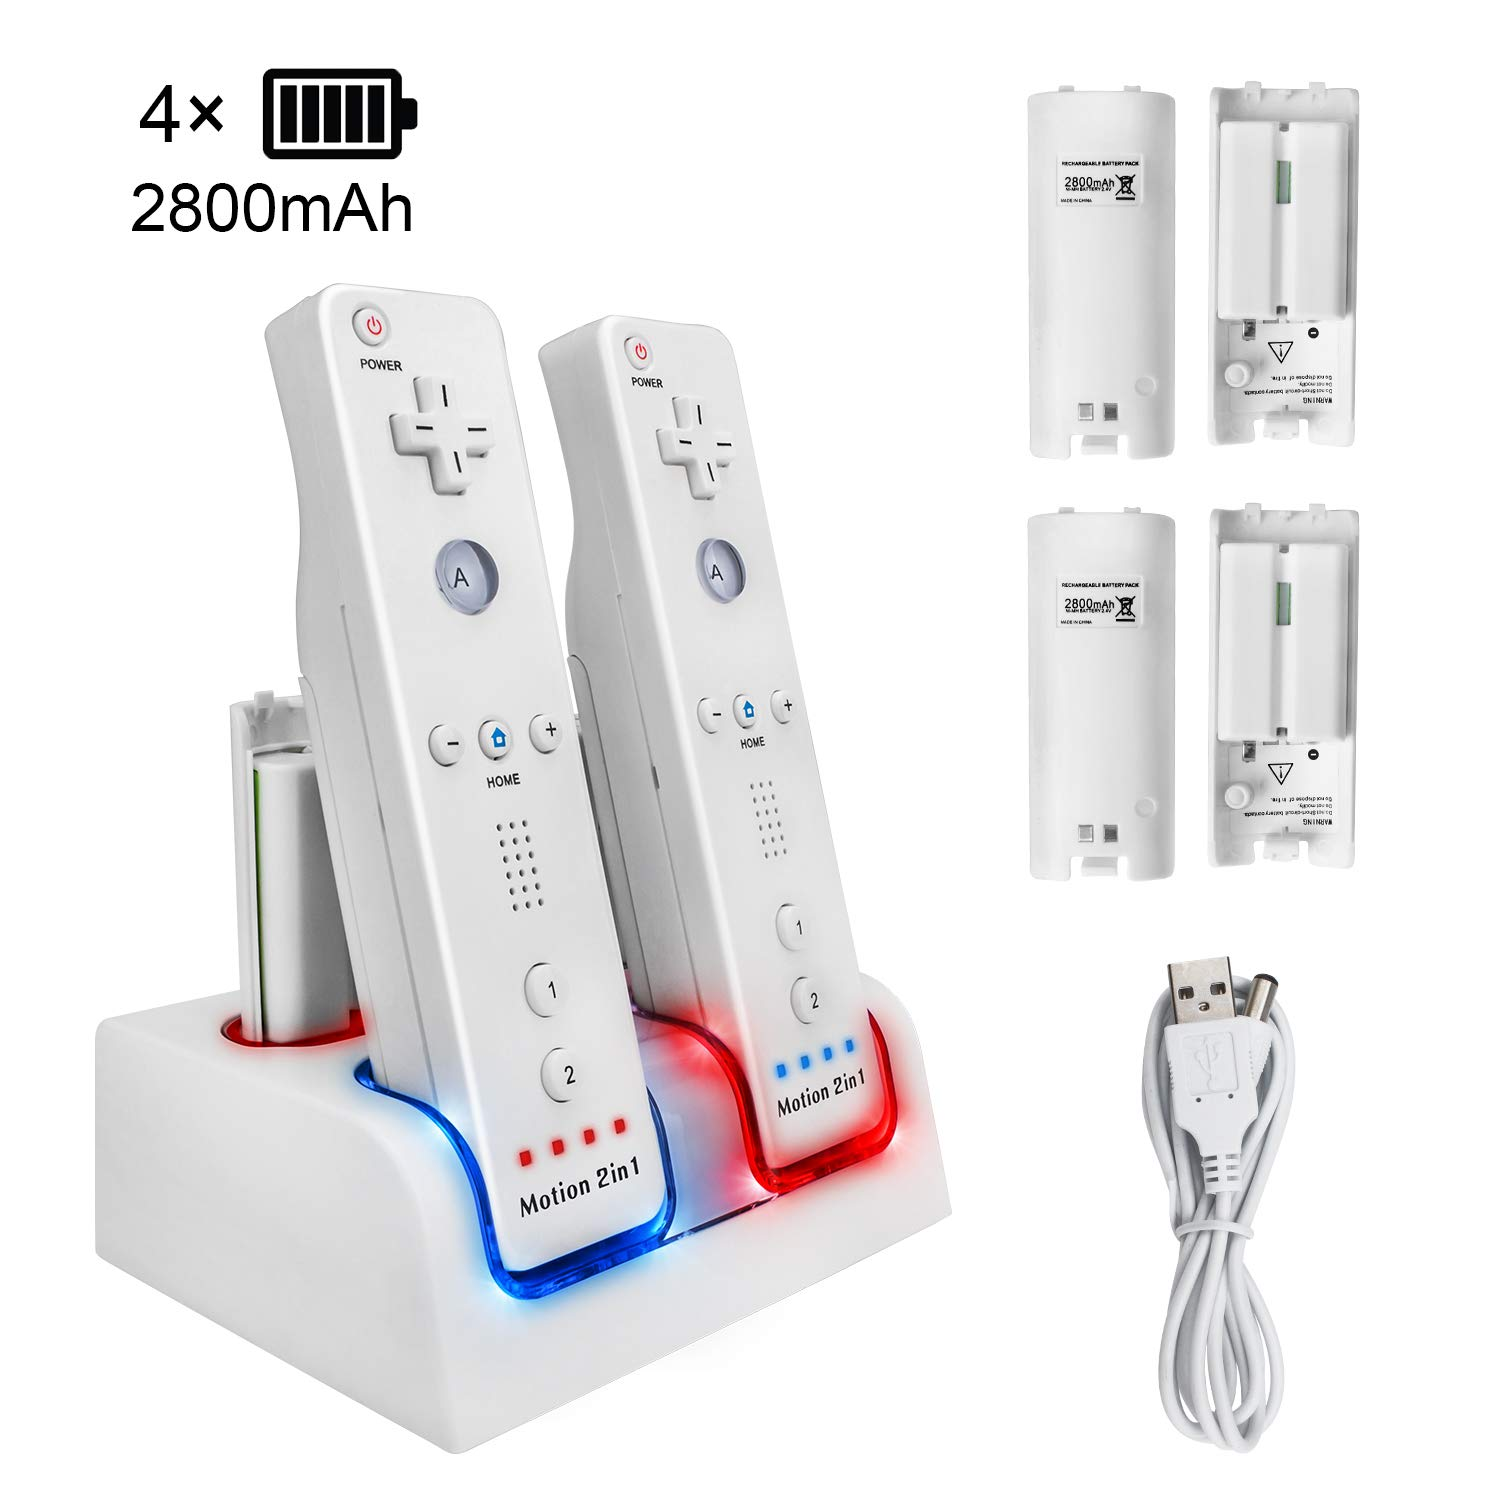 4 Ports Charging Station for Wii Remotes, TechKen Controller Charger Dock Station with 4 Bonus 2800mAh Rechargeable Batteries (Updated Version) by TechKen (Image #1)